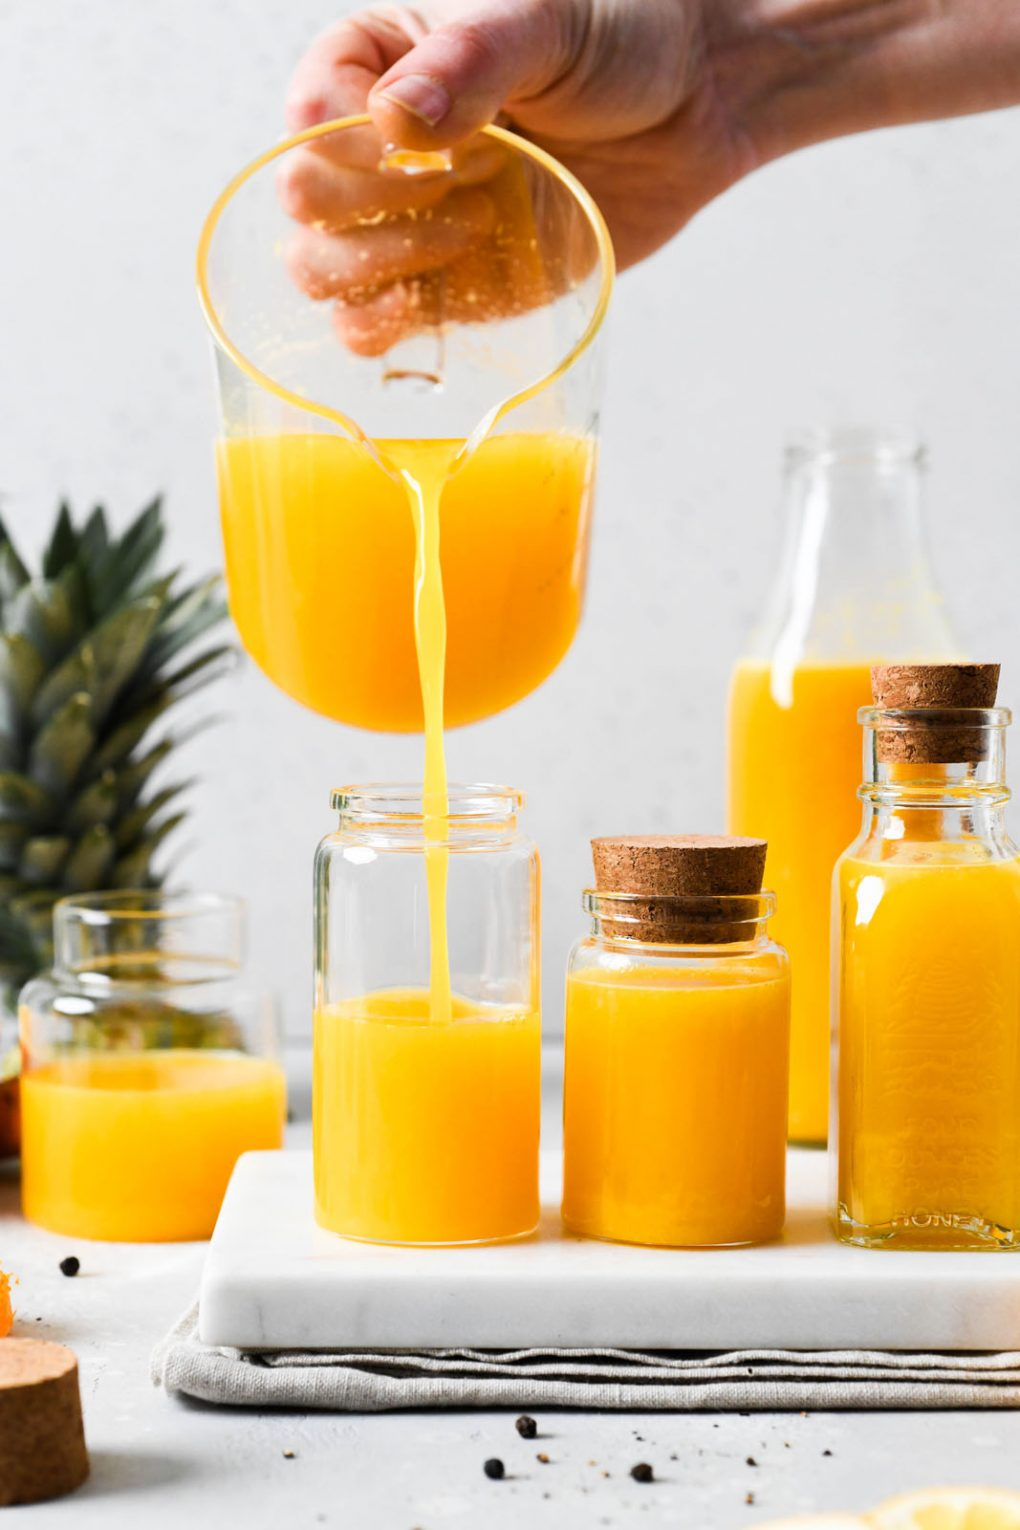 Straight on shot of a measuring glass pouring juice into a small glass container, next to various sized small jars filled with bright yellow immune boosting wellness shots. On a light background next to the top of a pineapple, cut lemon, and some scattered black peppercorns.